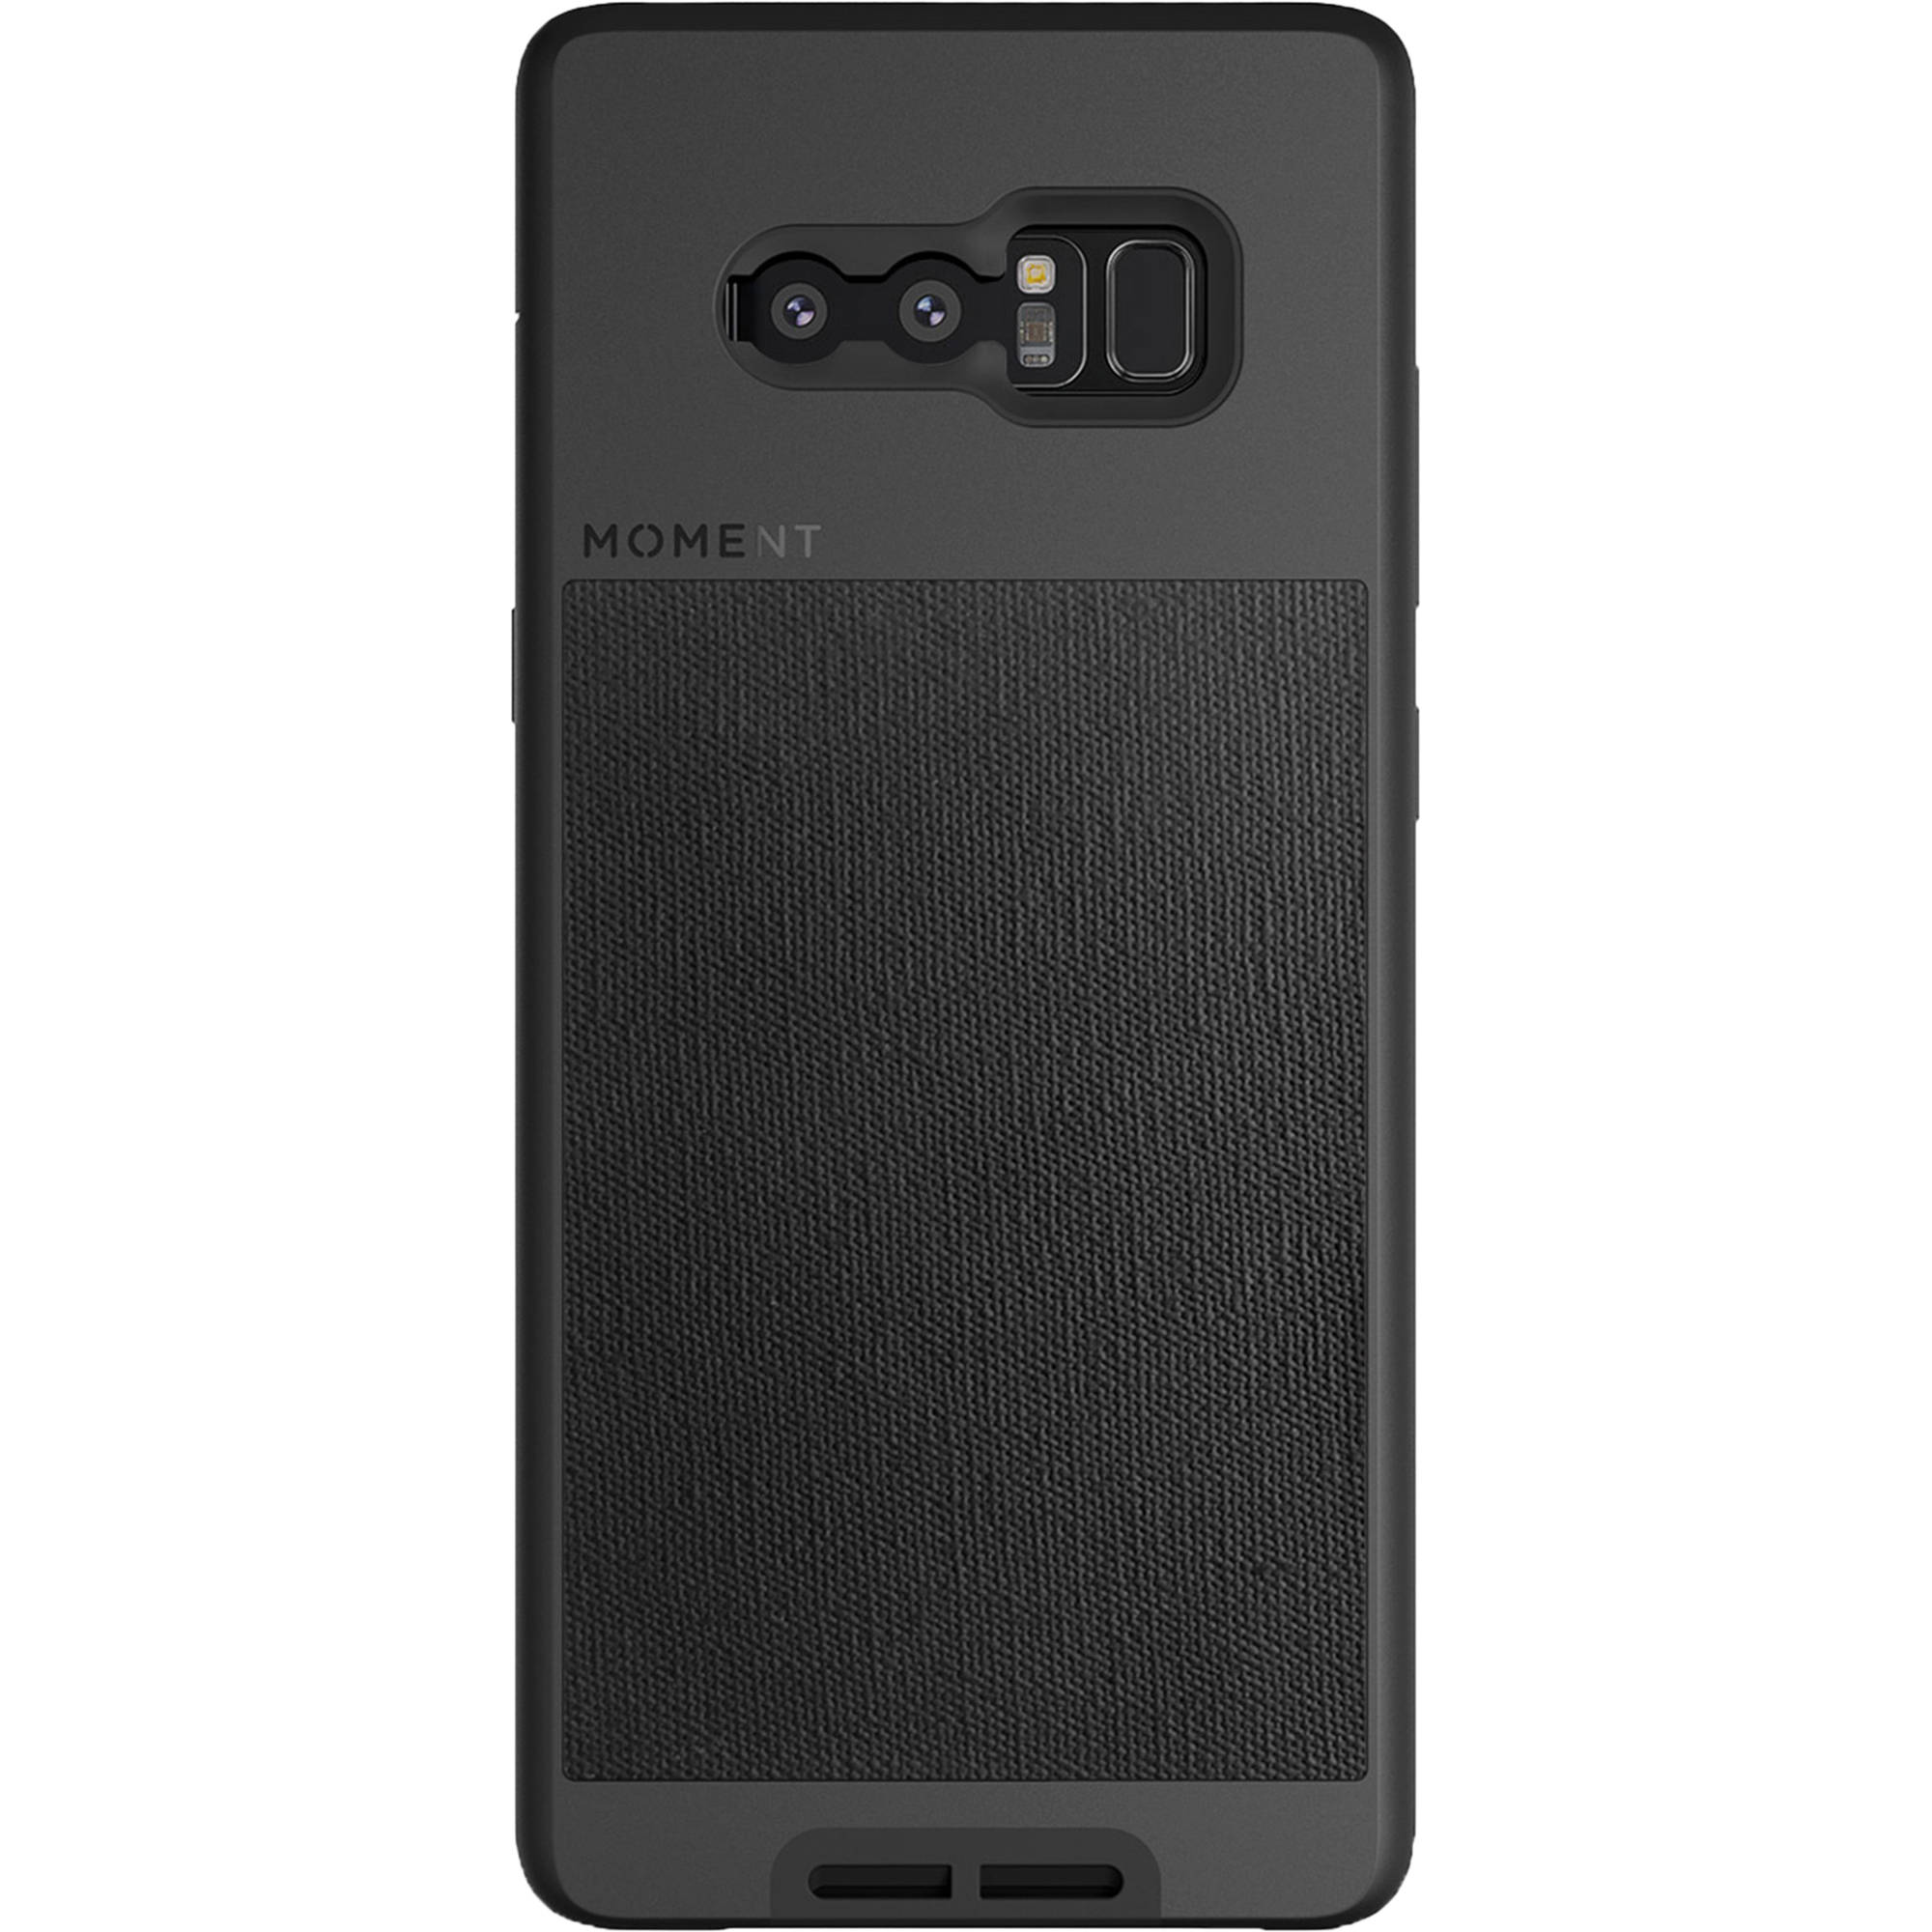 Moment Photo Case for Galaxy Note 8 (Black Canvas)